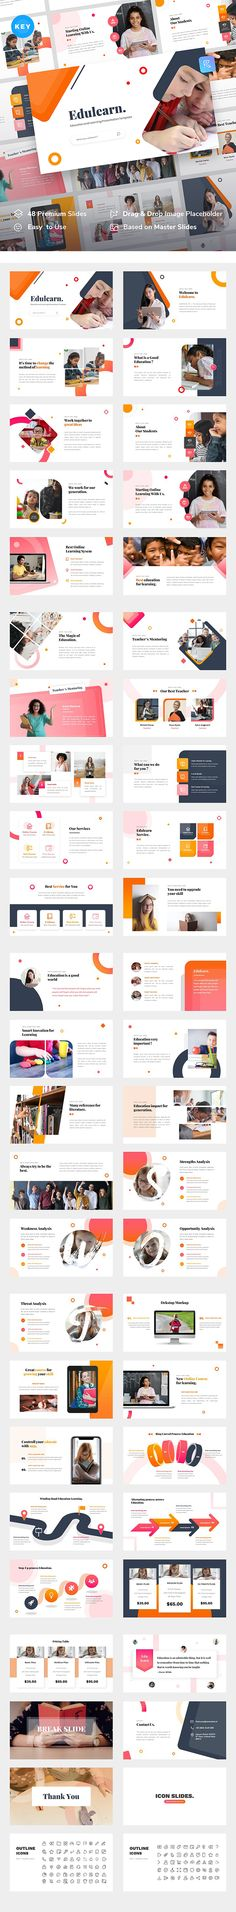 Buy Edulearn – Education and Learning Keynote Template by RabbStock on GraphicRiver. Introduce Edulearn – Education and Learning Keynote Template Edulearn is a multipurpose Education Keynote template t. Business Presentation Templates, Corporate Presentation, Presentation Design, Powerpoint Template Free, Keynote Template, Education Templates, Envato Elements, Free Web Fonts, Learning